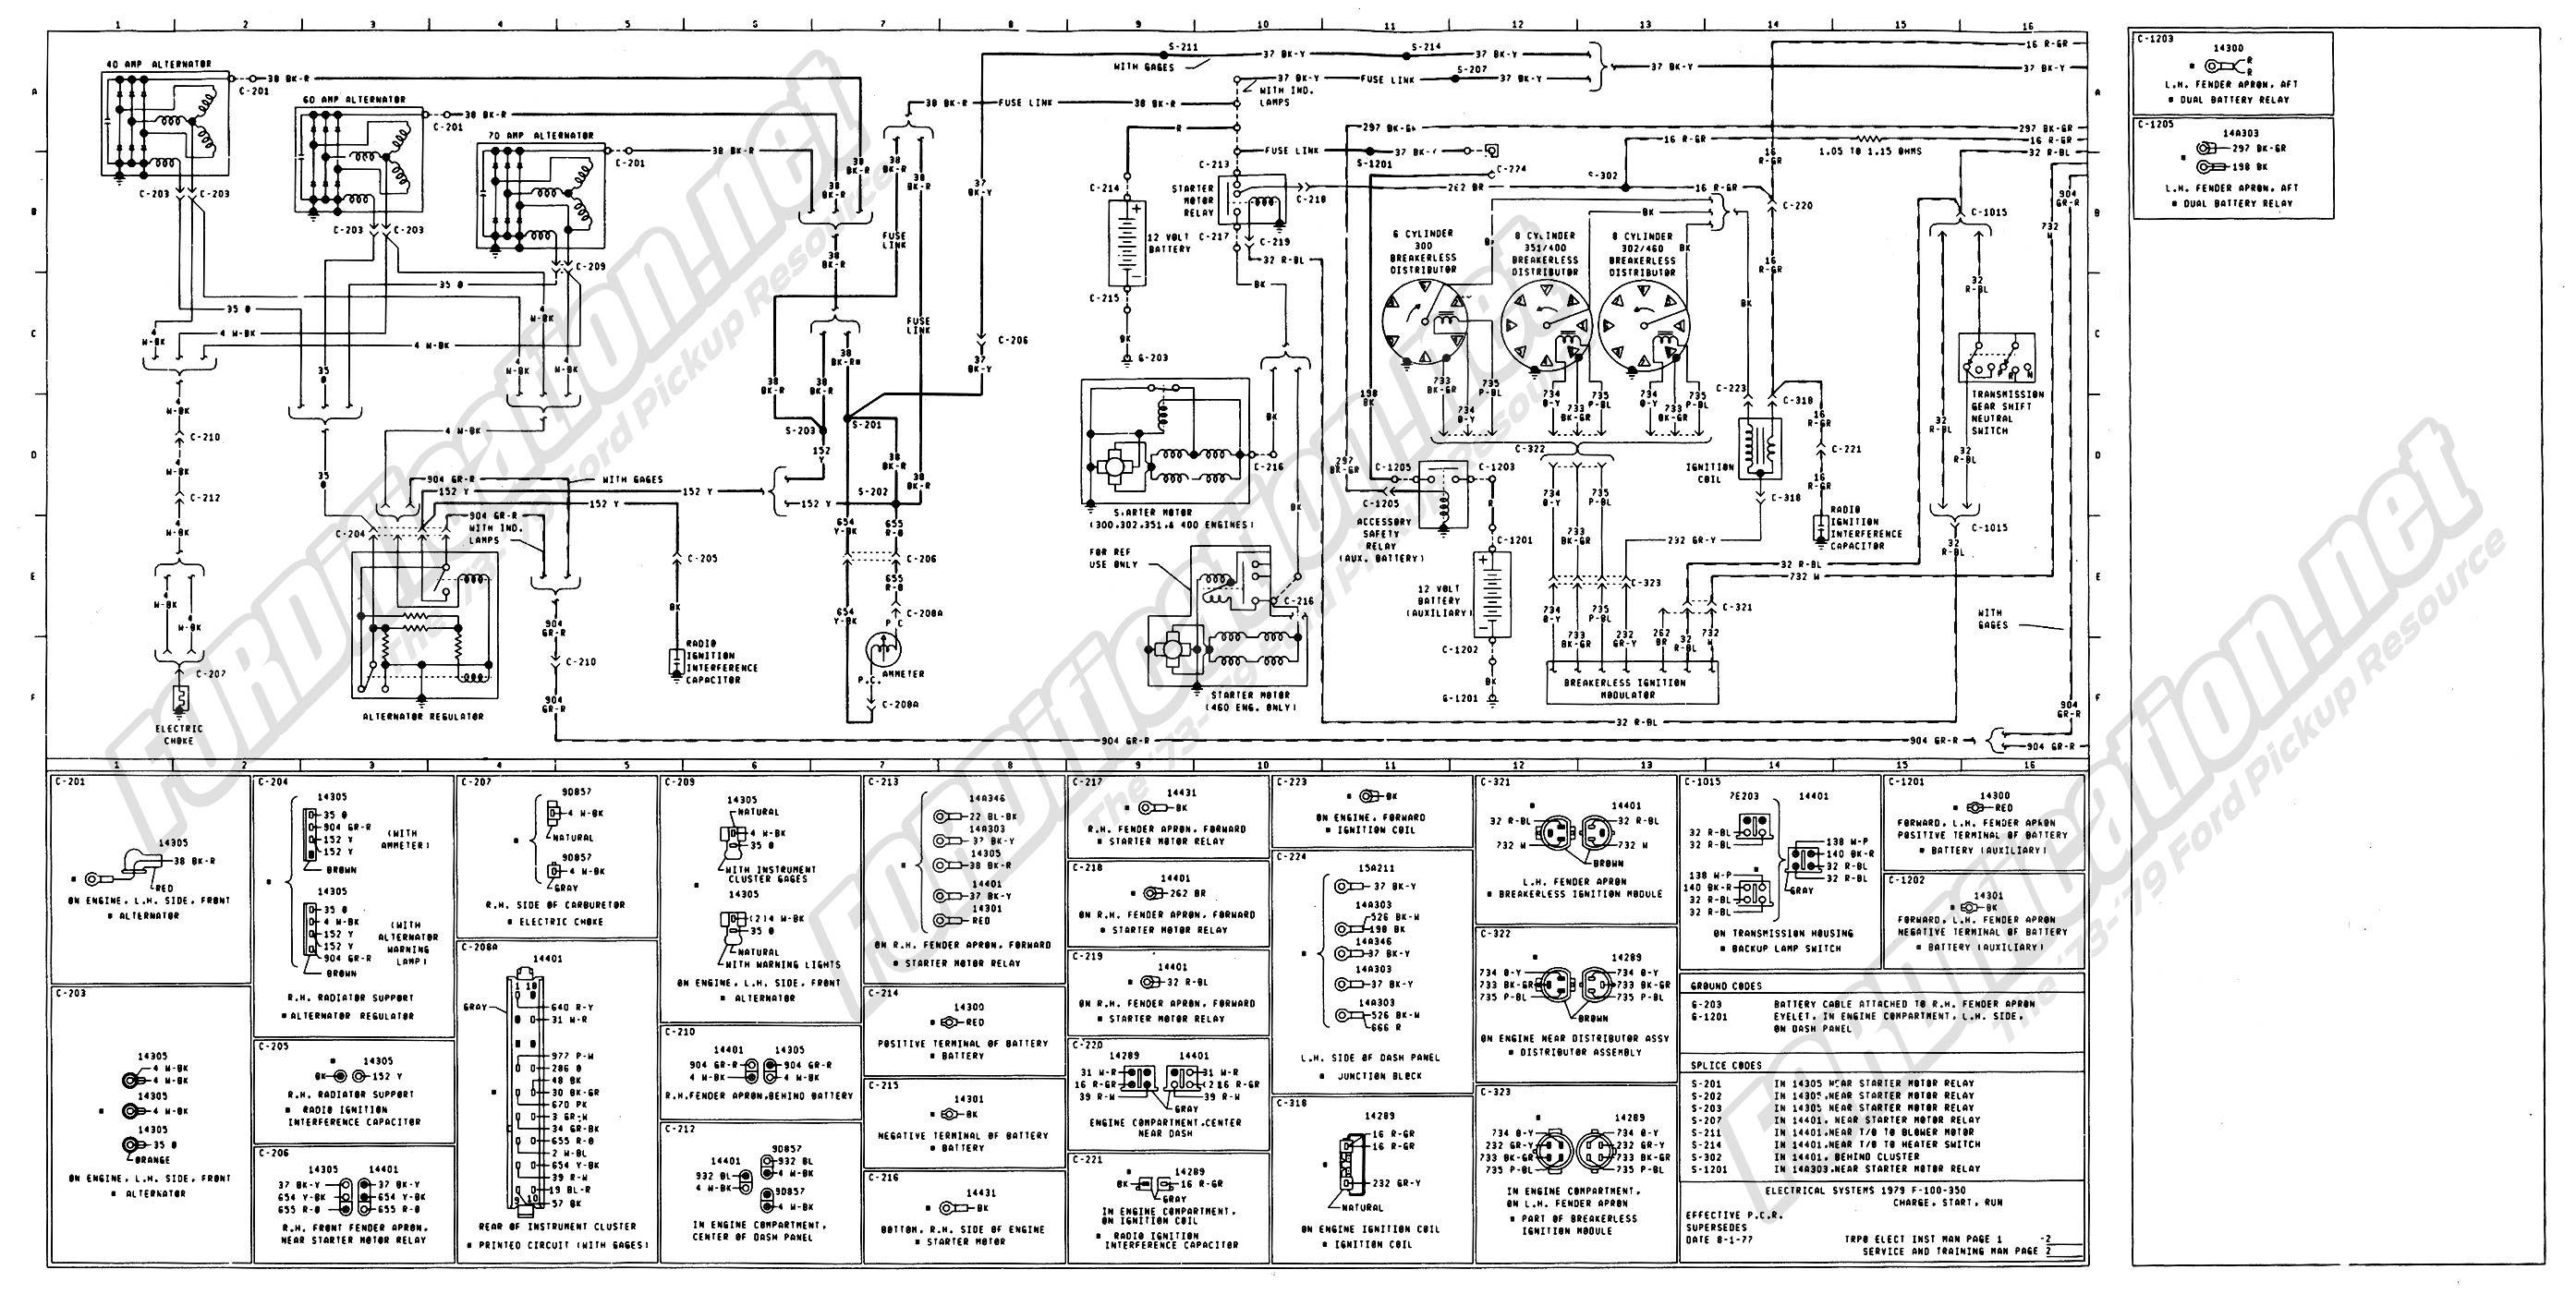 [DIAGRAM_4FR]  A4D43 Ford Ltl 9000 Wiring Diagram | Wiring Resources | 1984 Ford L9000 Truck Wiring Diagrams |  | Wiring Resources